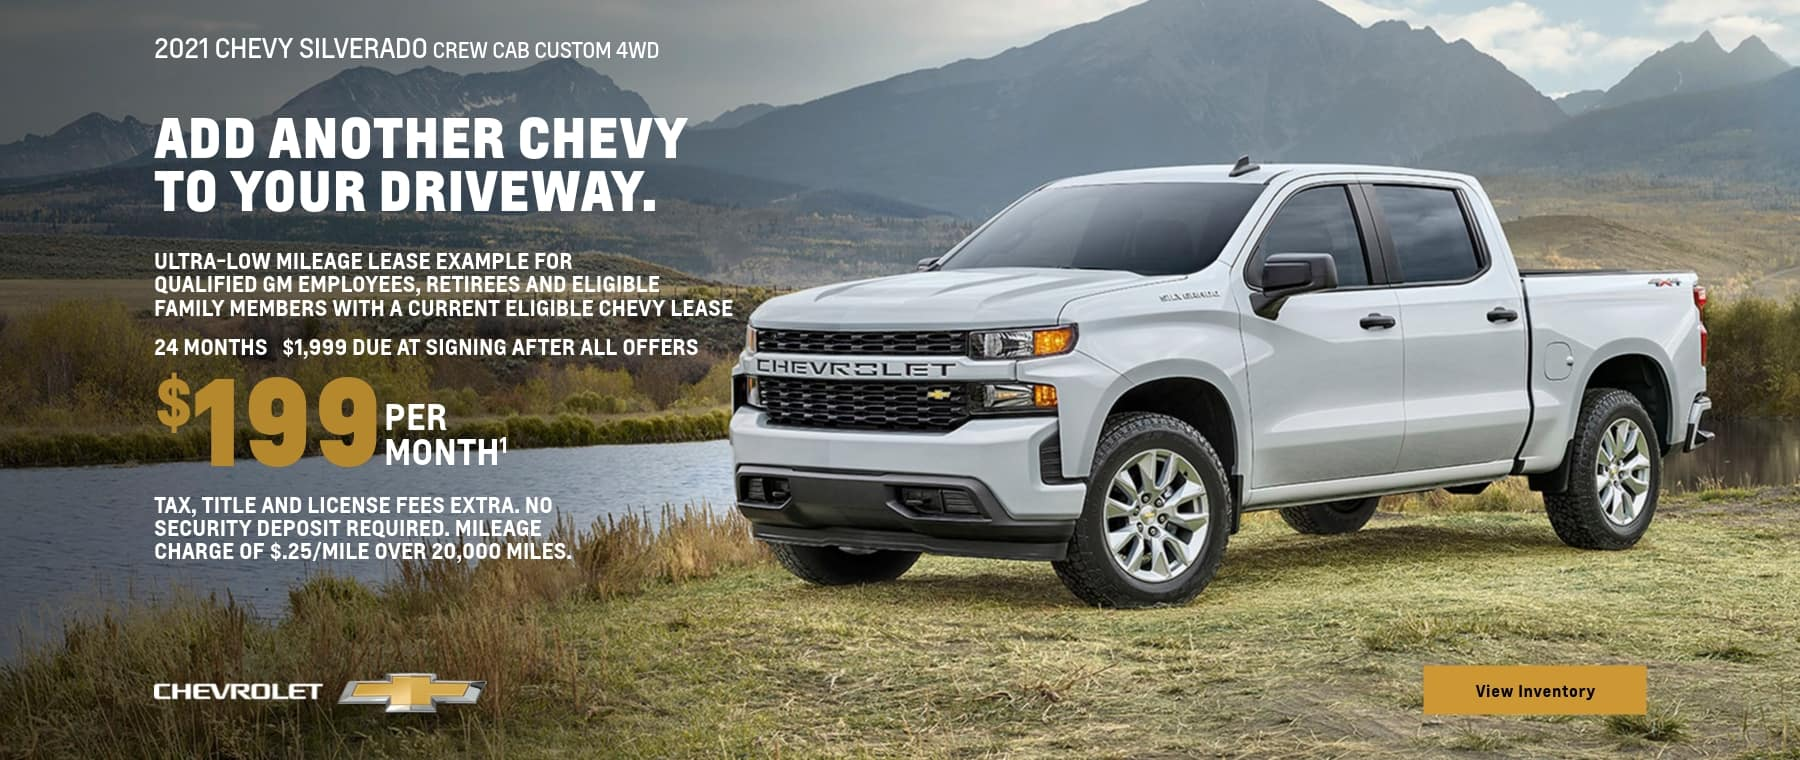 2021 Chevy Silverado Custom Crew Cab 4WD. Ultra low mileage lease example for qualified GM employees retirees and eligible family members with a current eligible Chevy lease. $199 per month for 24 months. $1,999 due at signing after all offers.